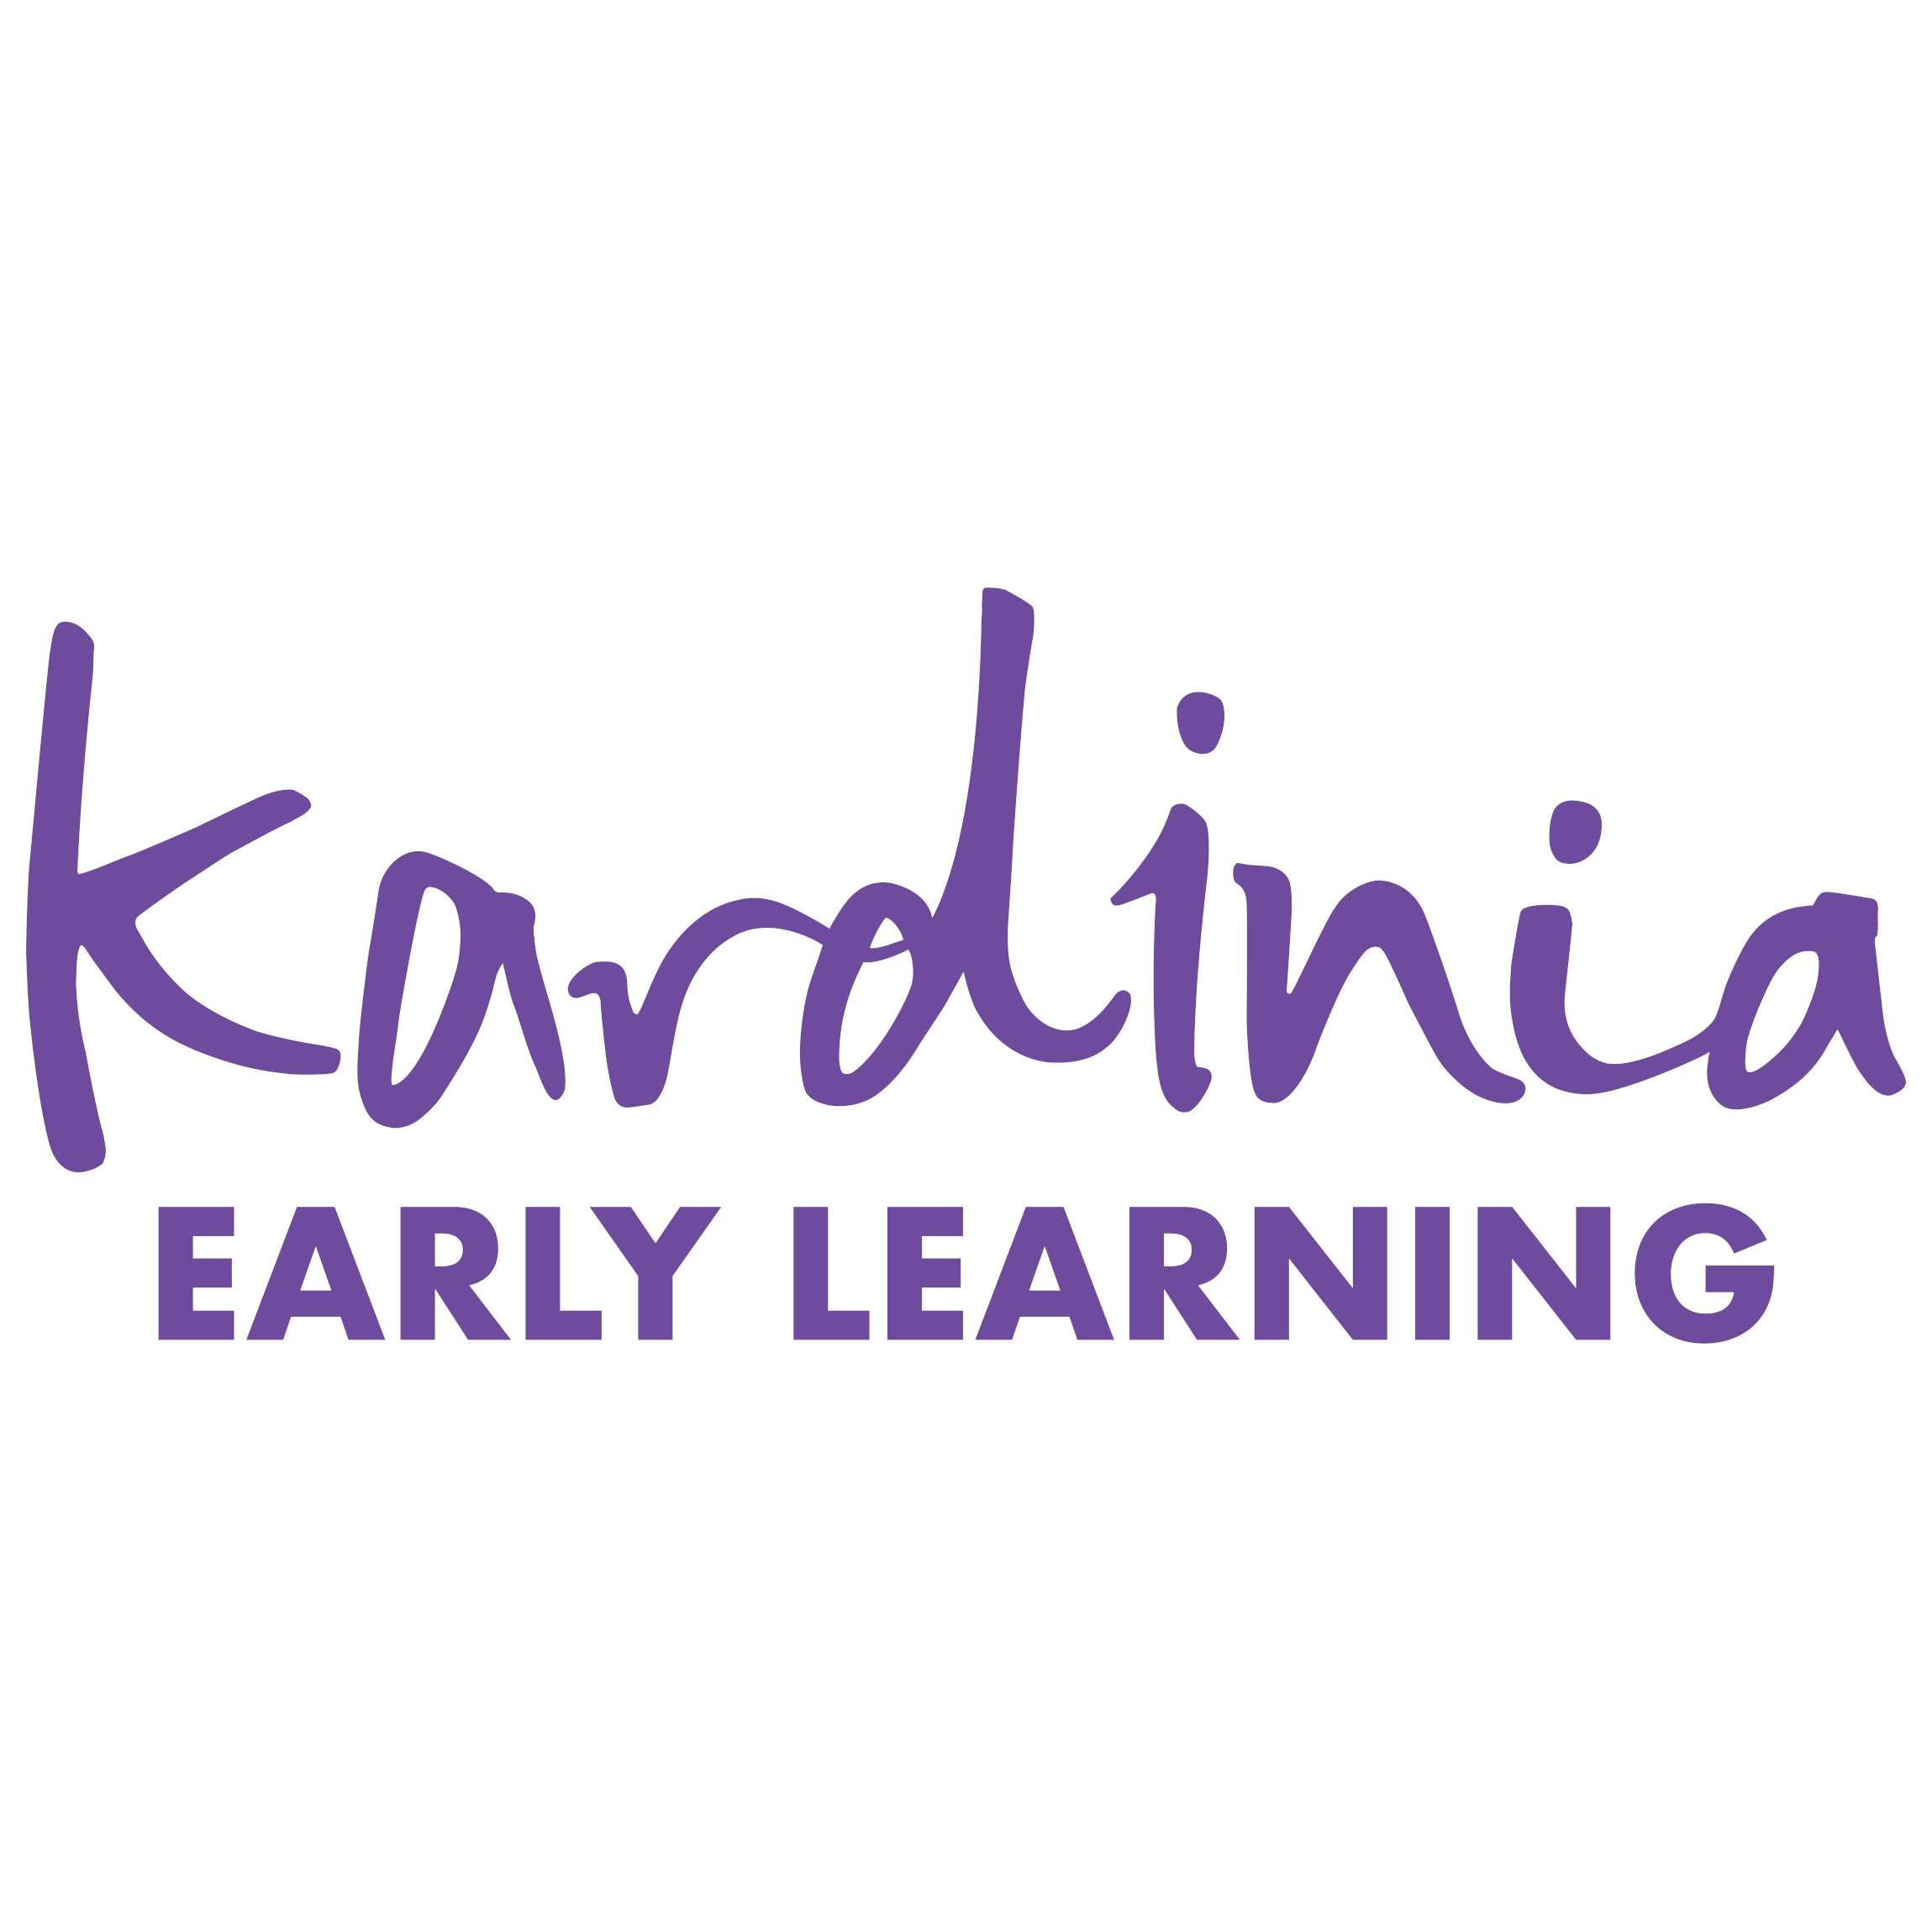 Kardinia Early Learning childcare organization logo in purple